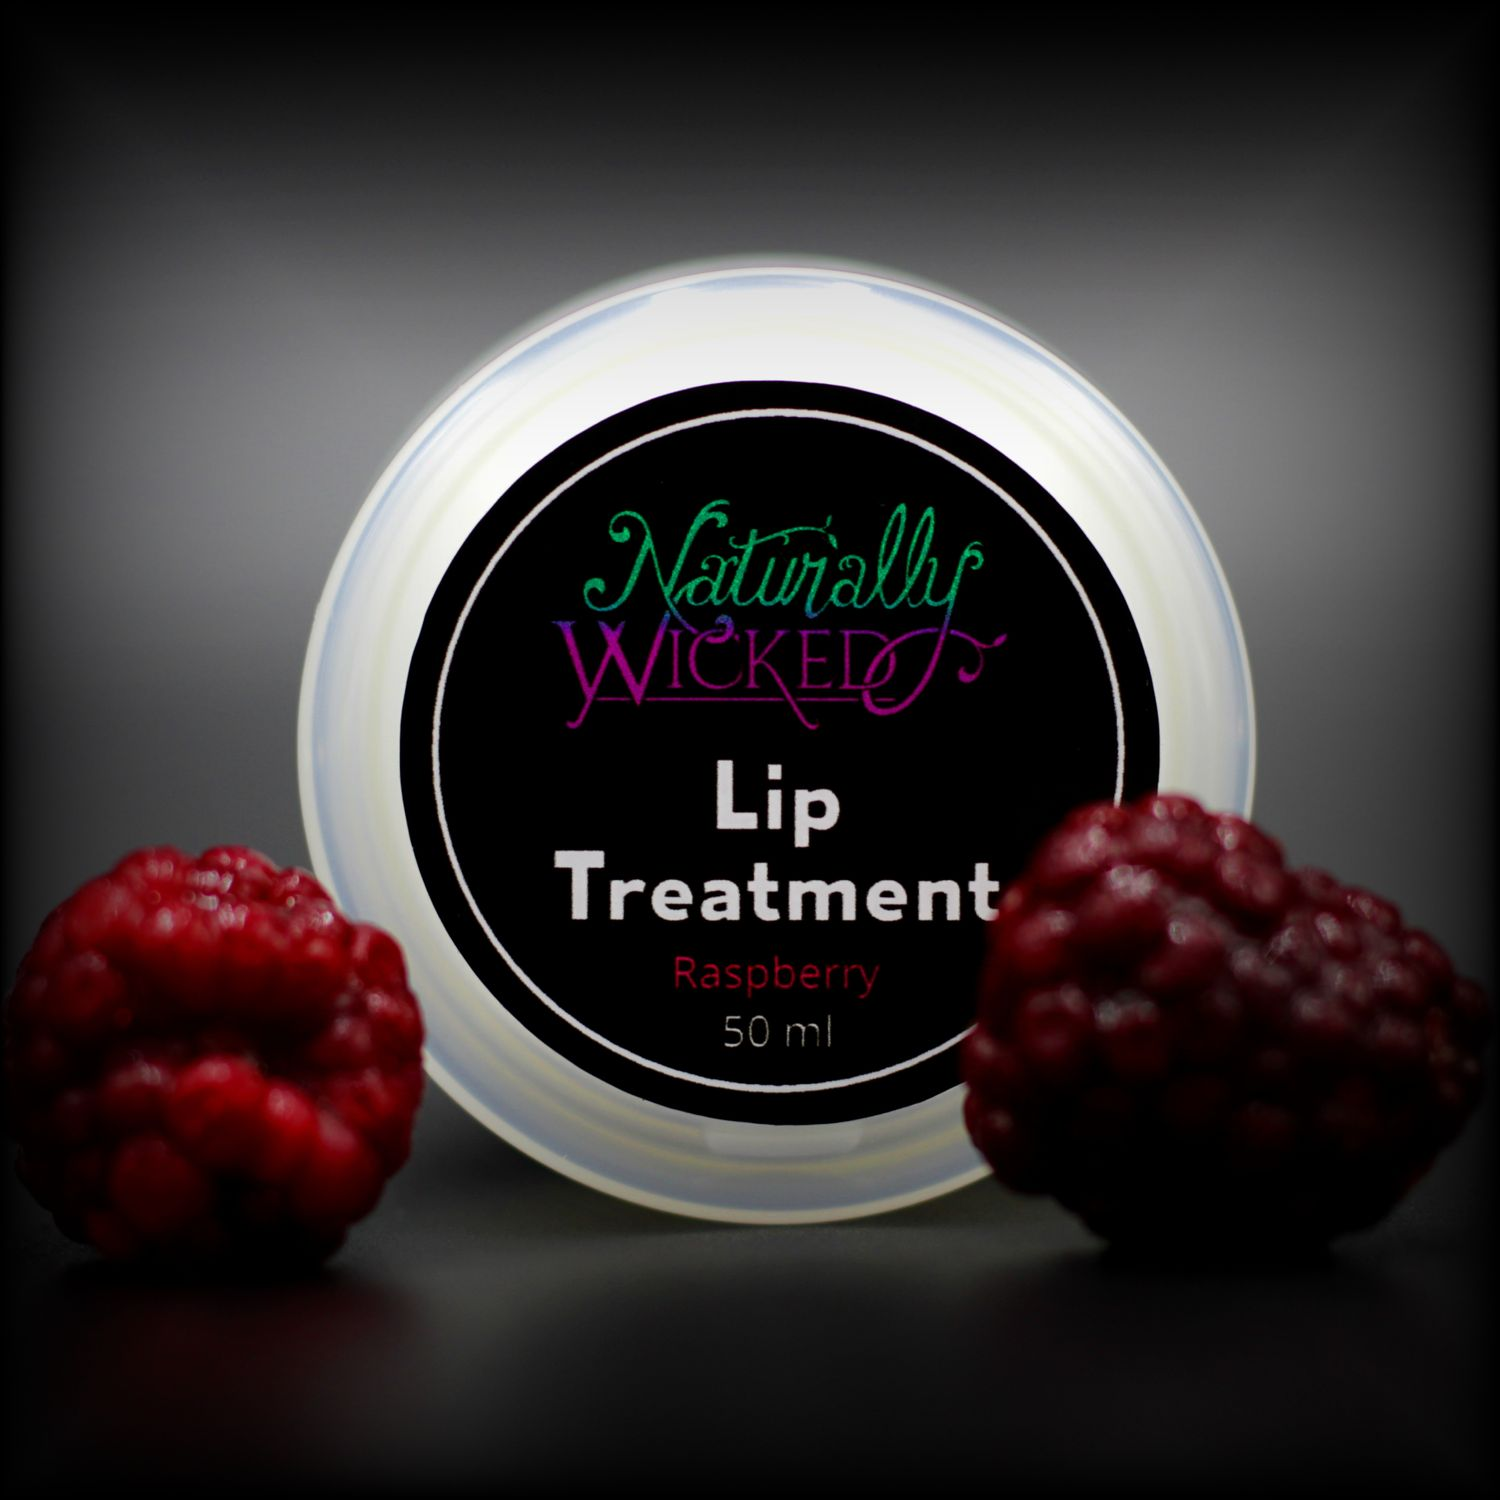 Naturally Wicked Raspberry Lip Treatment Lid With Two Bright Red Raspberries In Front